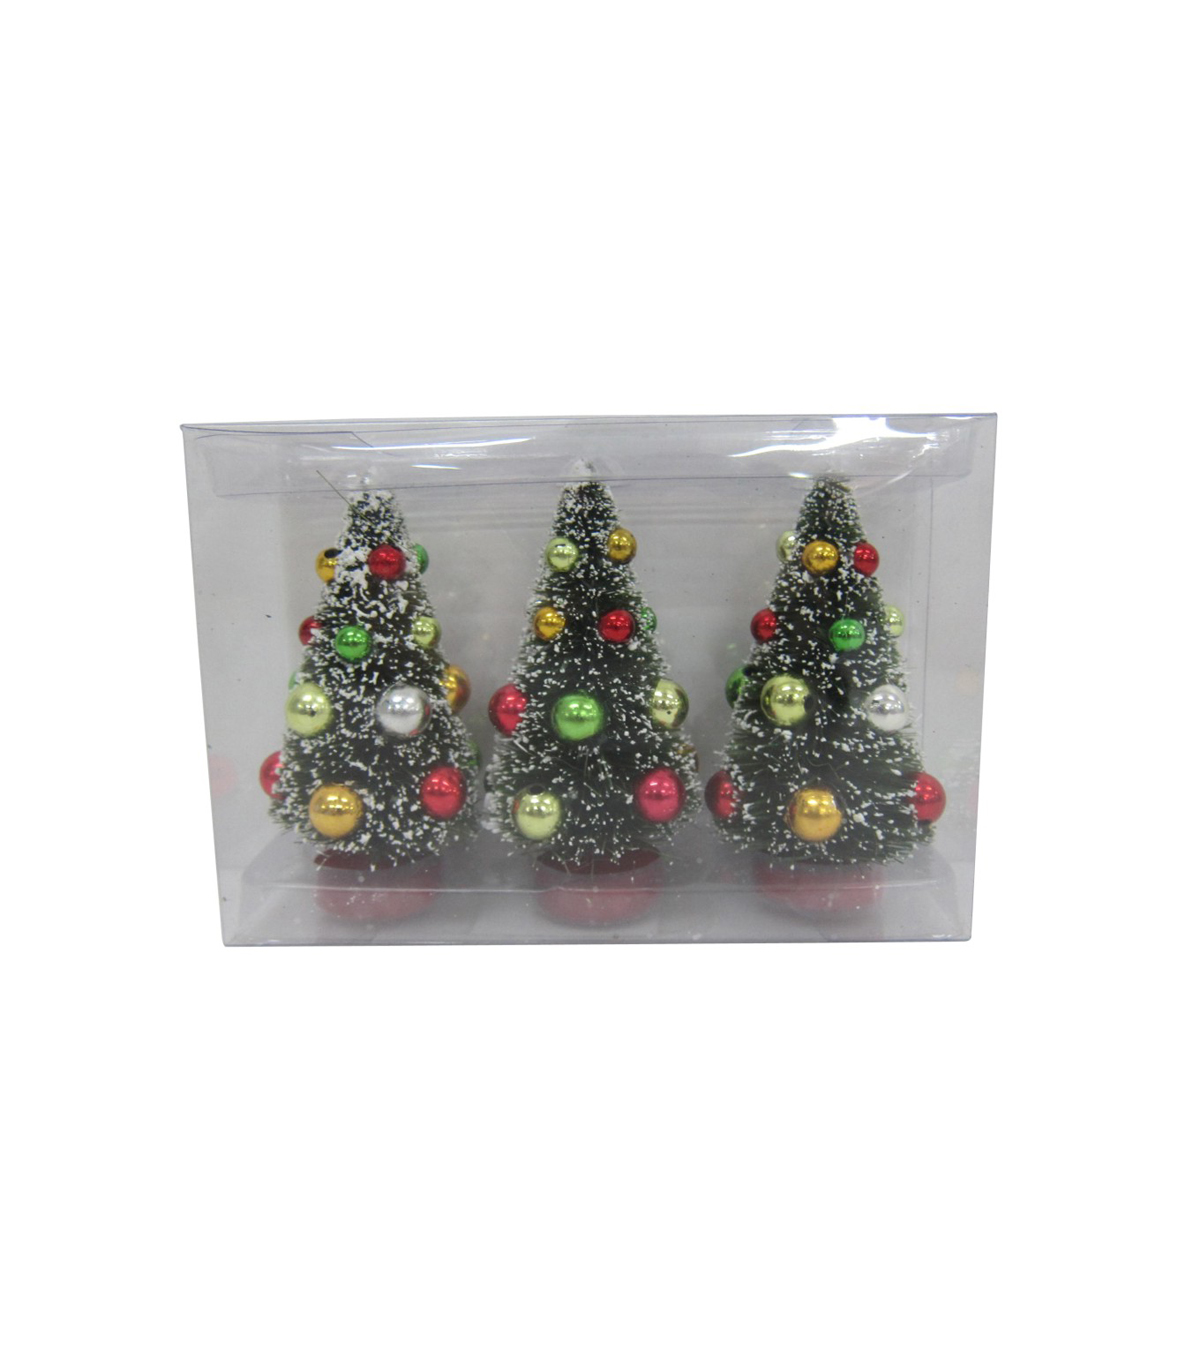 Maker's Holiday Christmas 3 Pack Trees with Ornaments-Red & Green